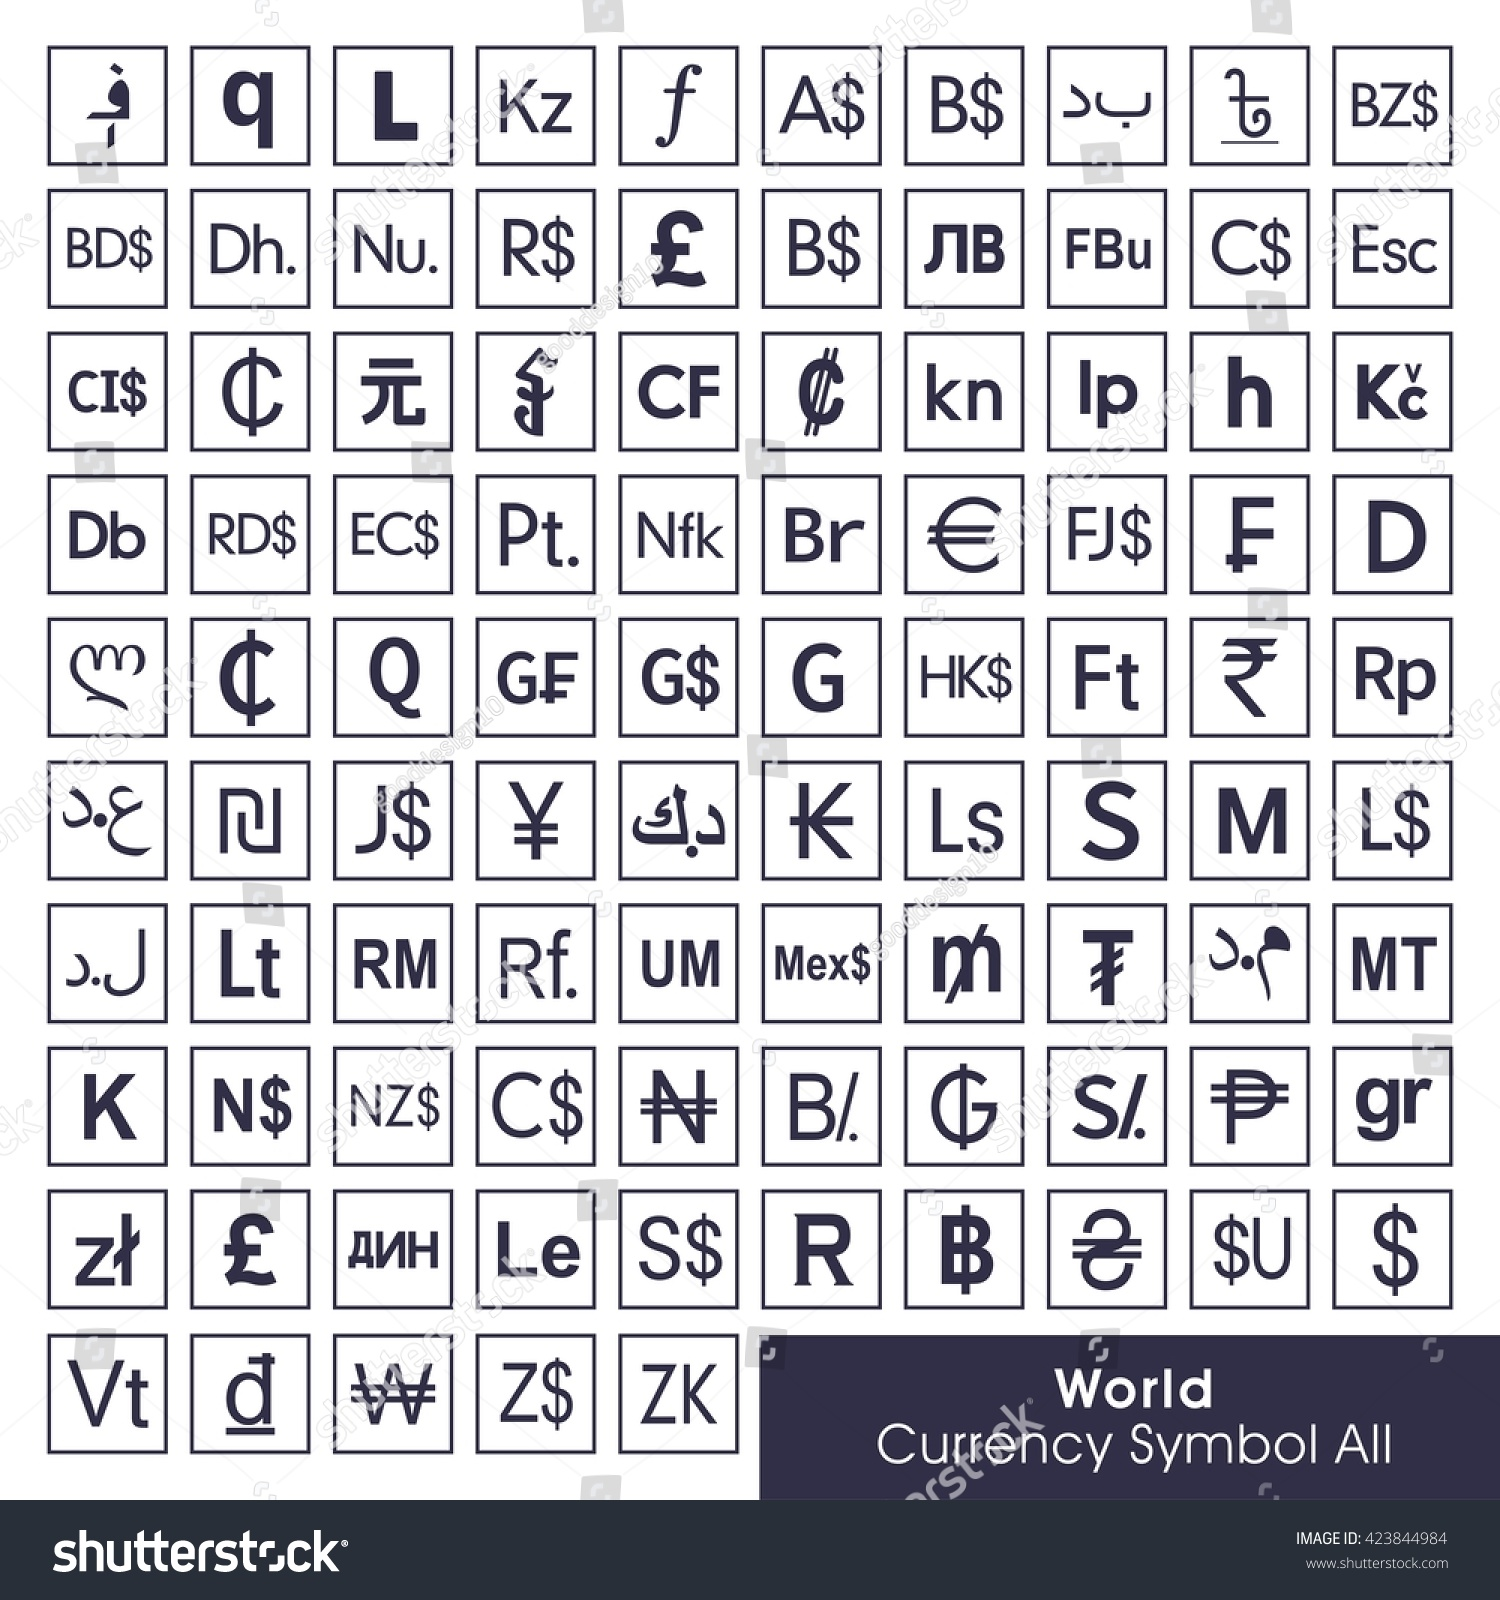 Royalty Free World All Currency Symbols Currency 423844984 Stock